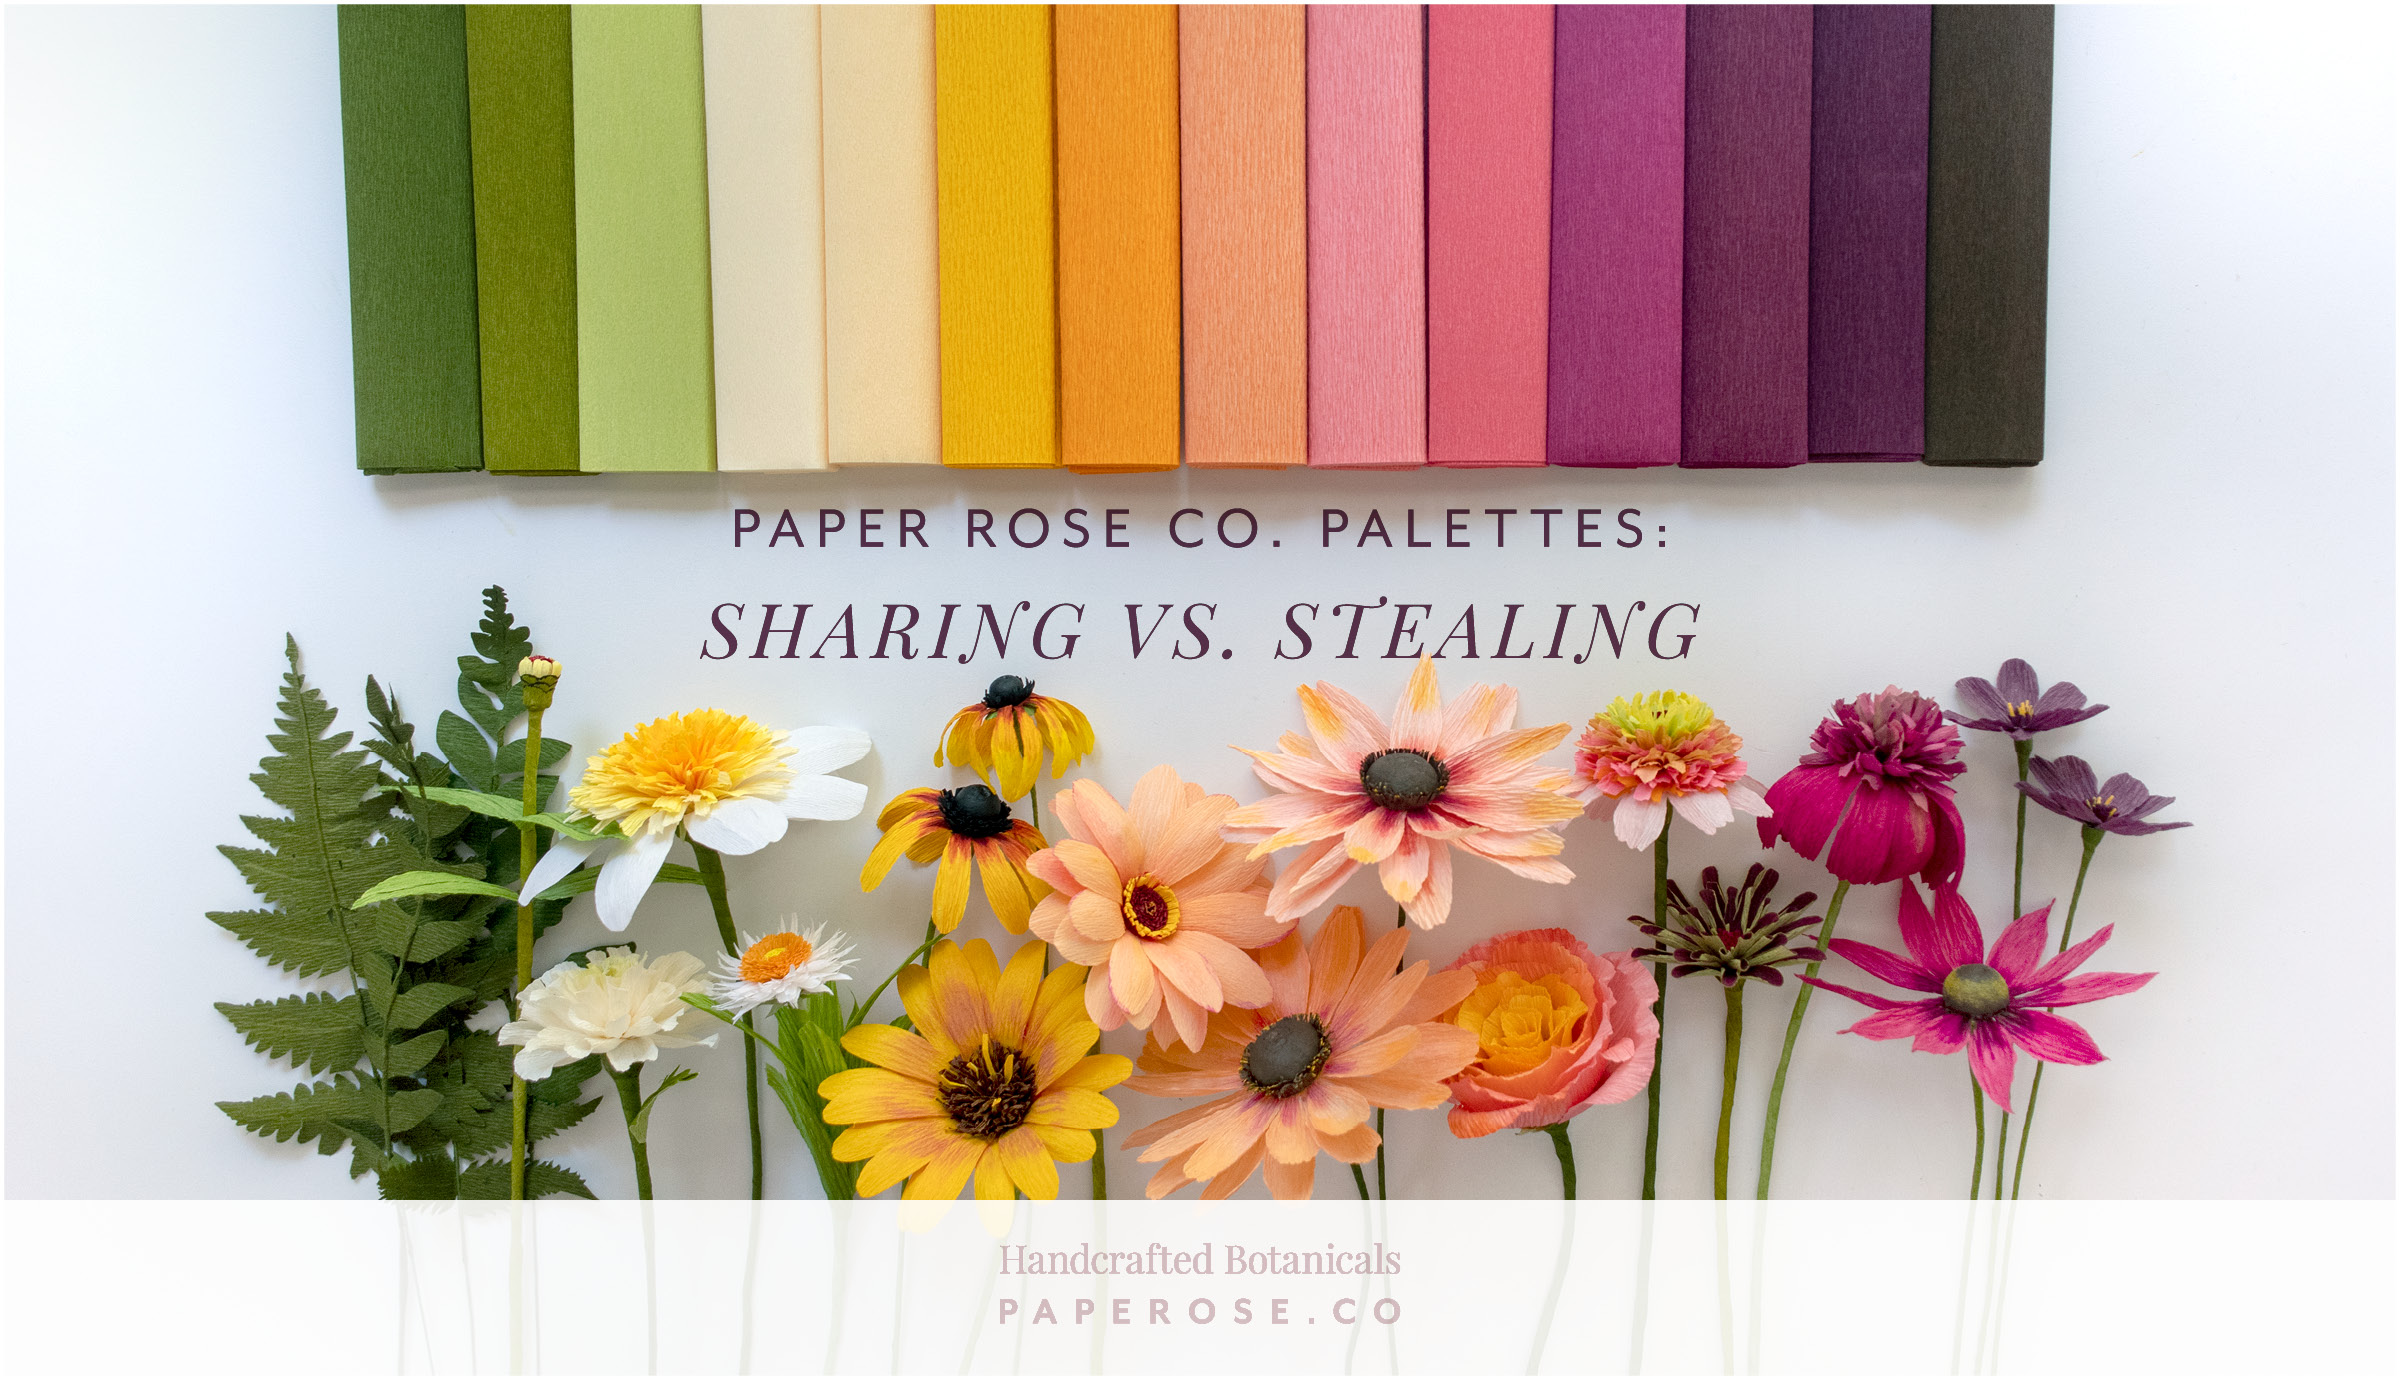 Paper Rose Co. Palettes:  Sharing vs. Stealing